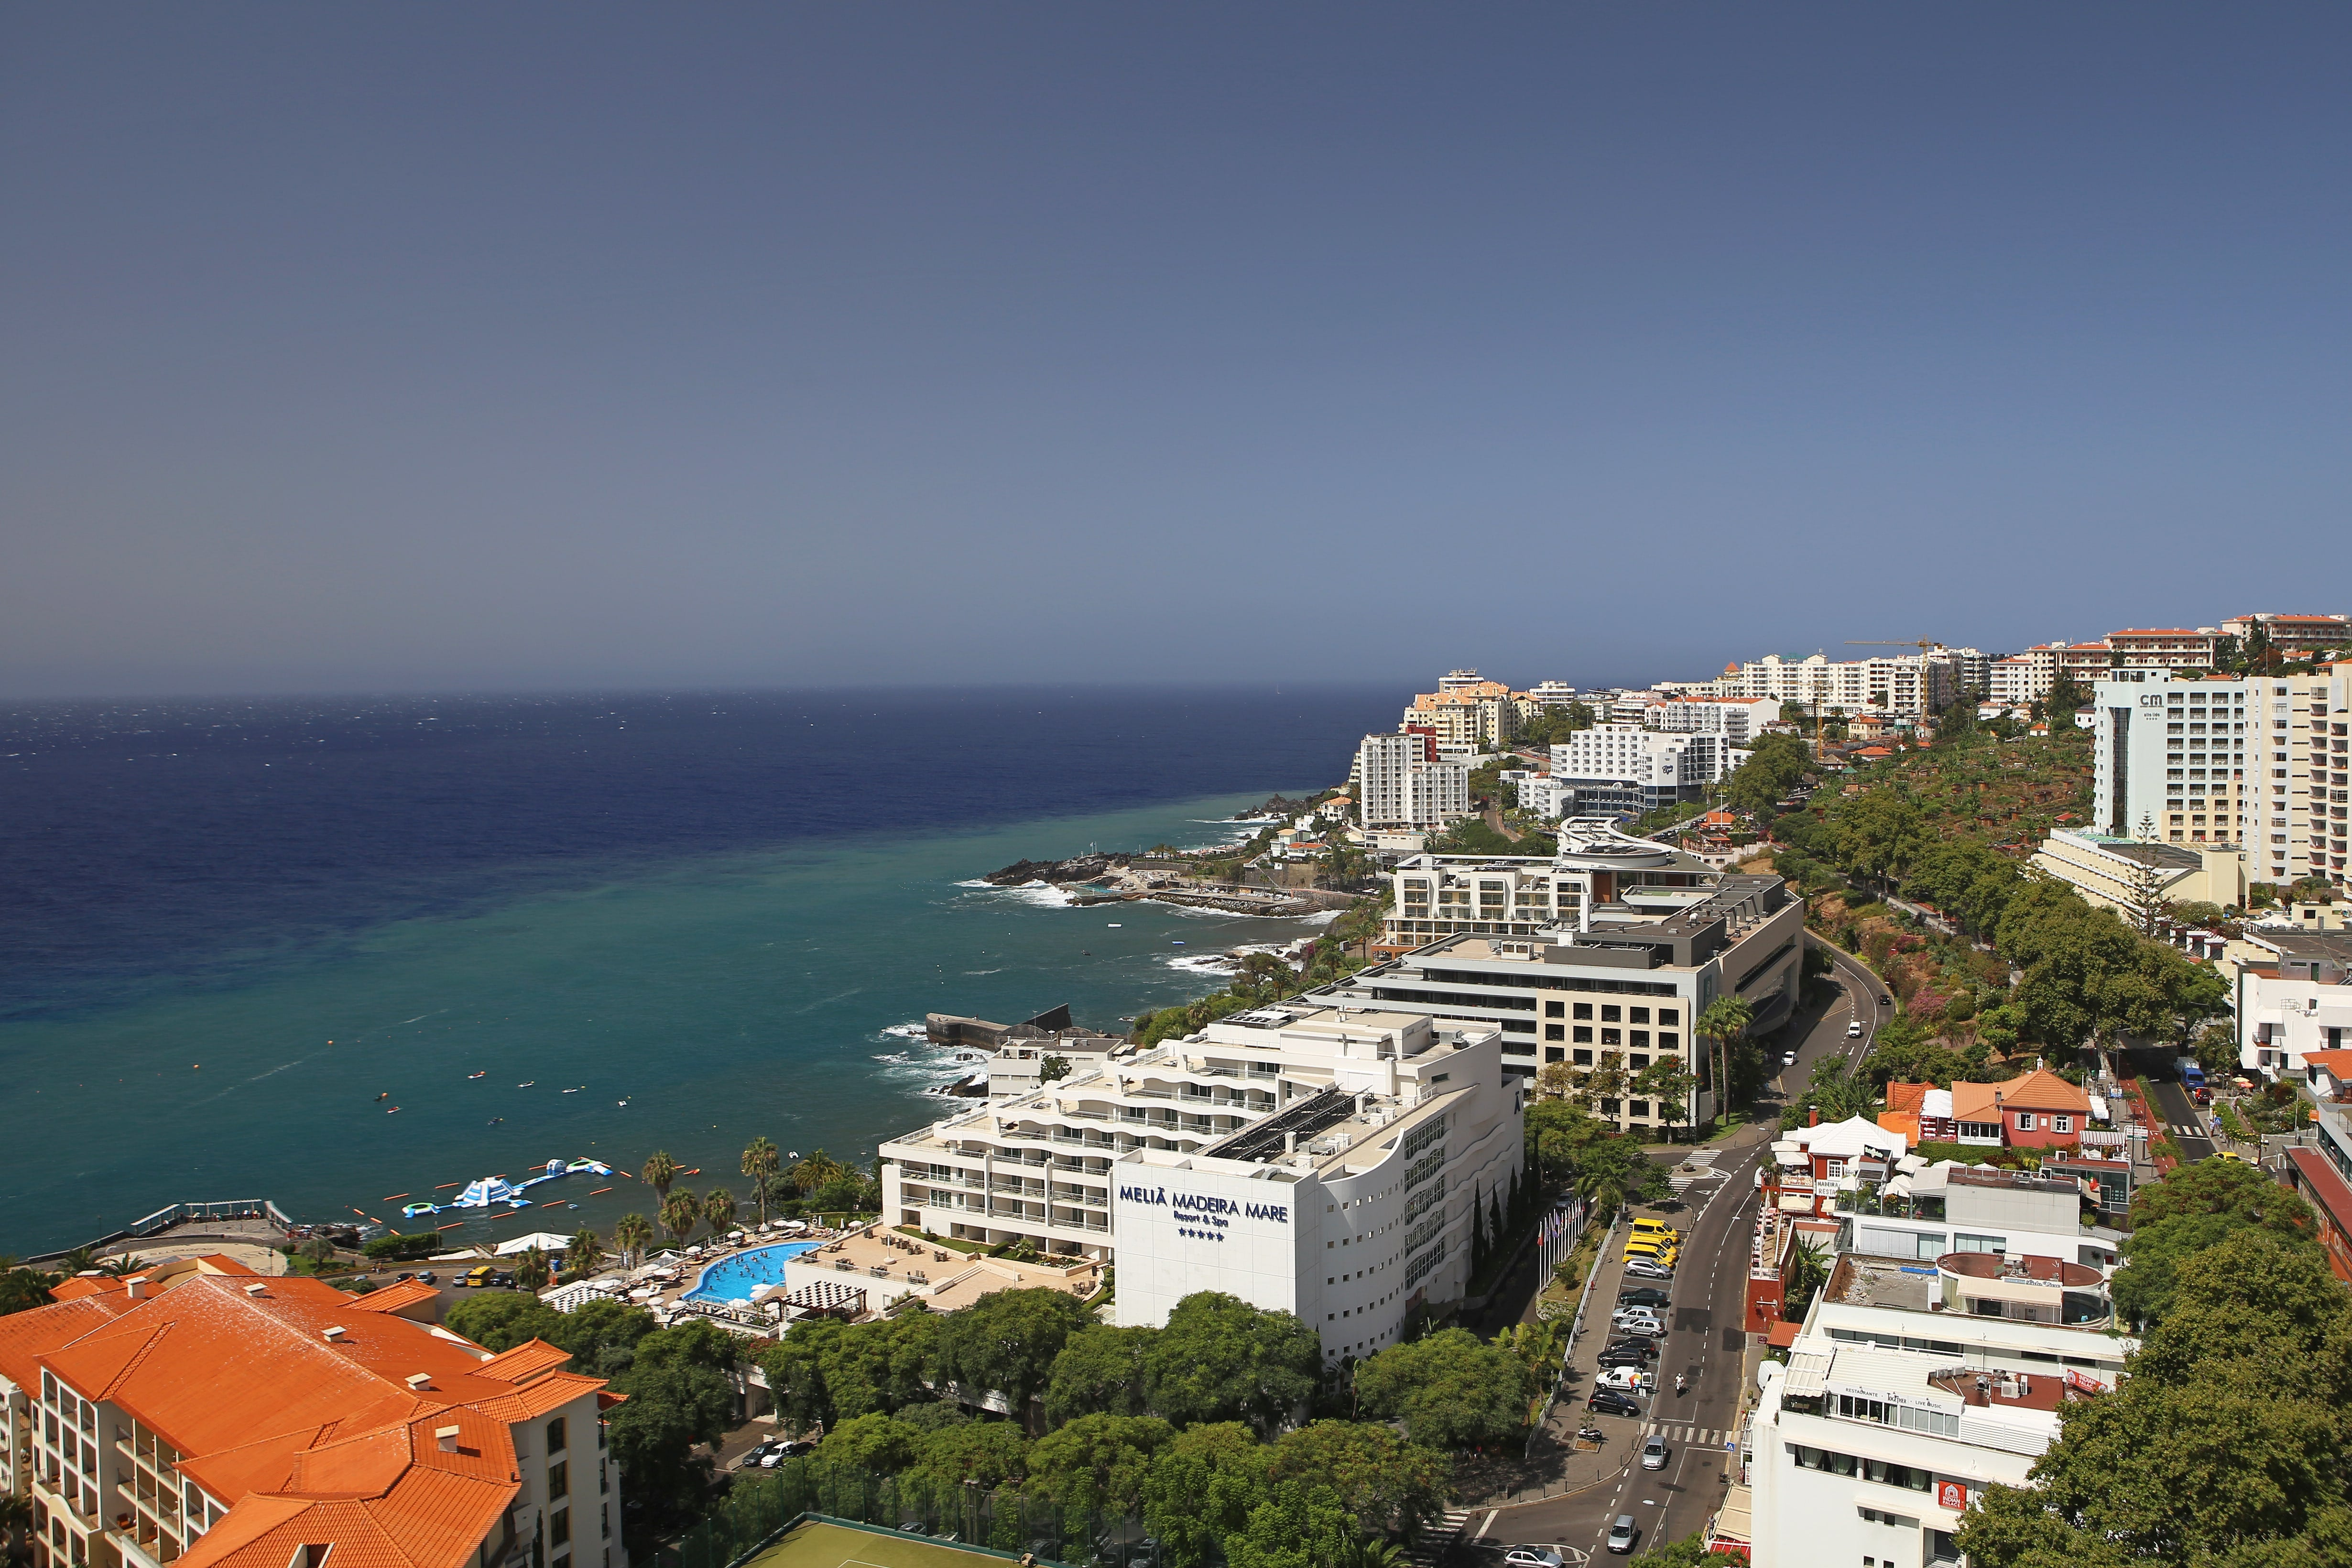 Holiday in Madeira: reviews of tourists